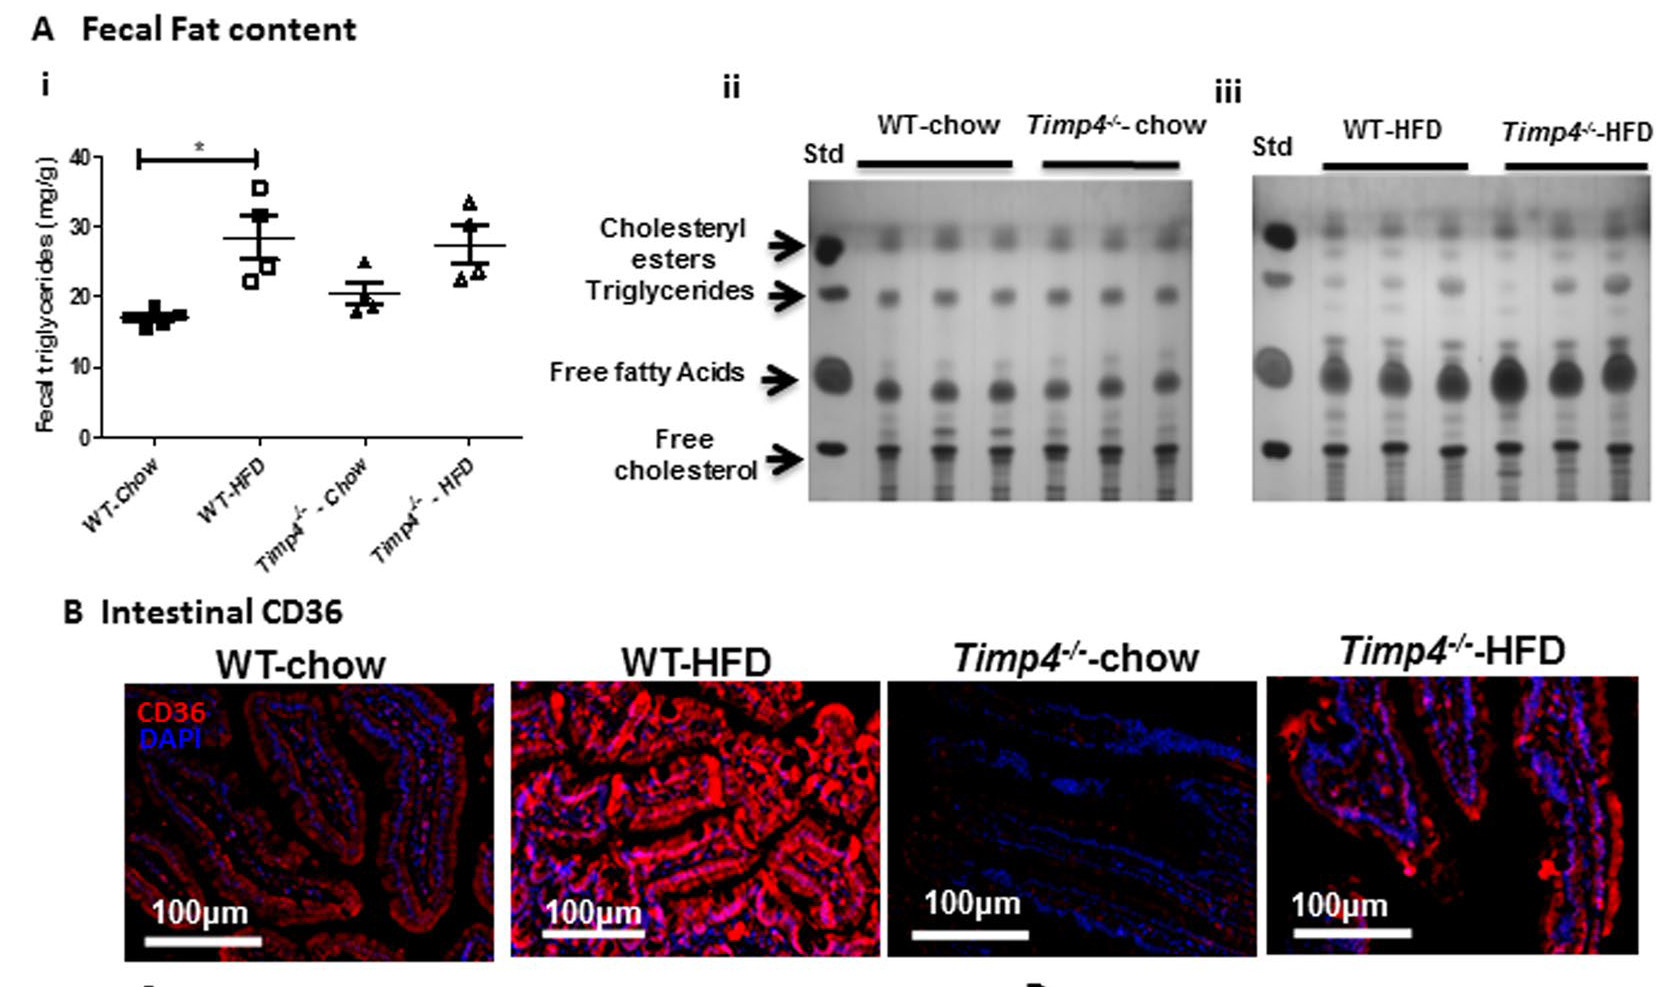 TIMP4-deficiency results in defective lipid digestion and absorption. (Sakamuri et al., Scientific Reports, 2017.)